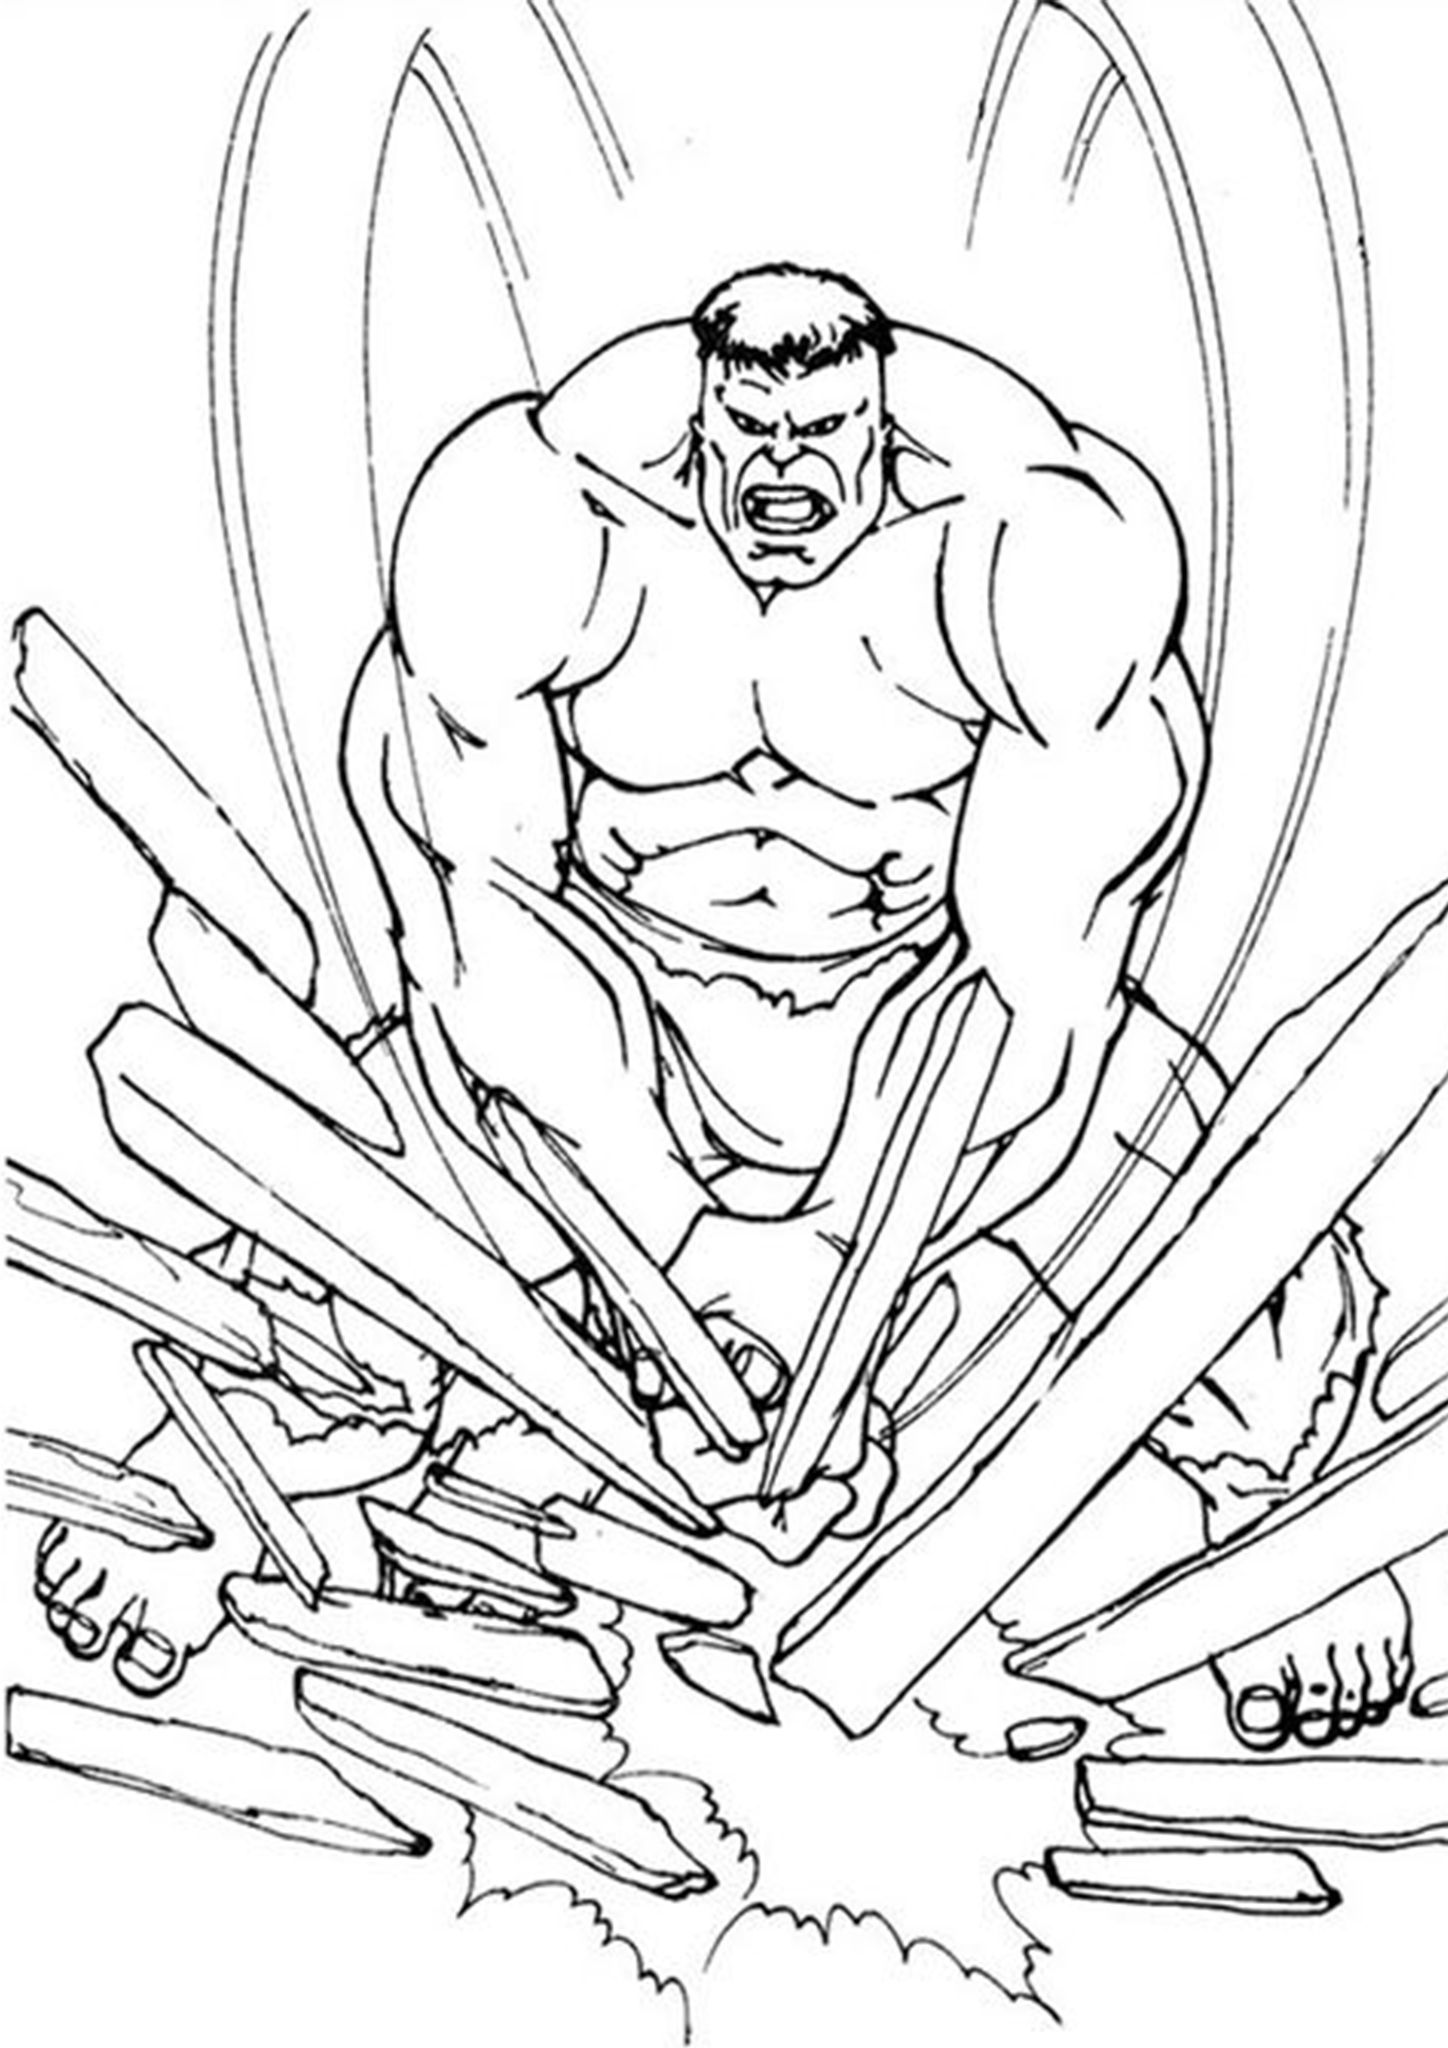 Free Easy To Print Hulk Coloring Pages Hulk Coloring Pages Superhero Coloring Pages Mermaid Coloring Pages